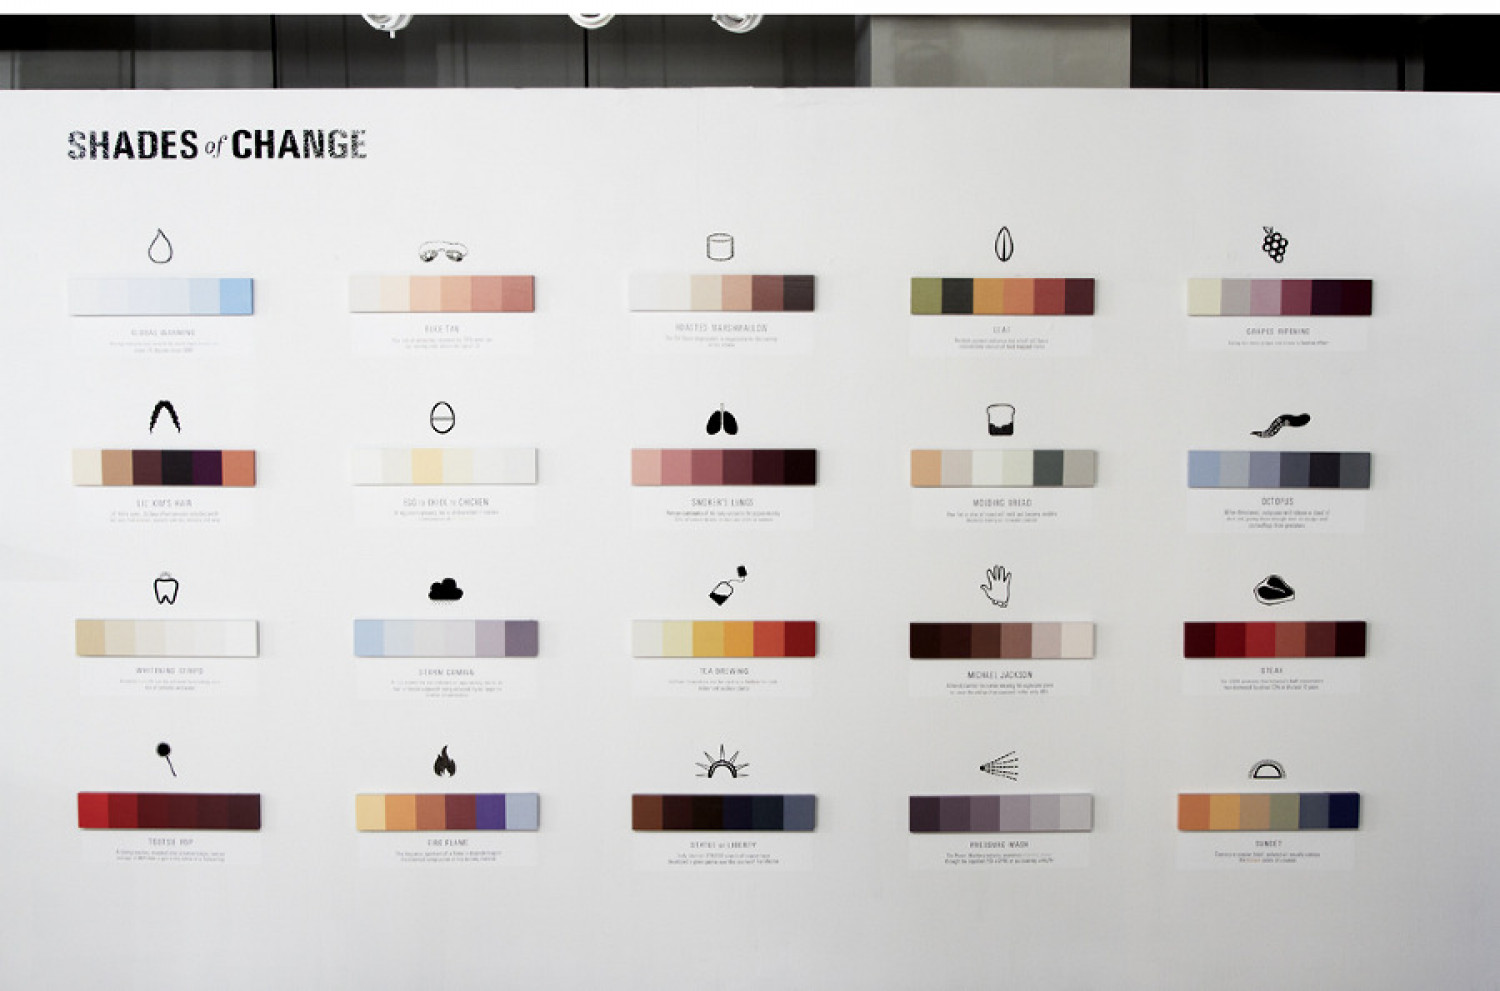 Shades of Change Infographic